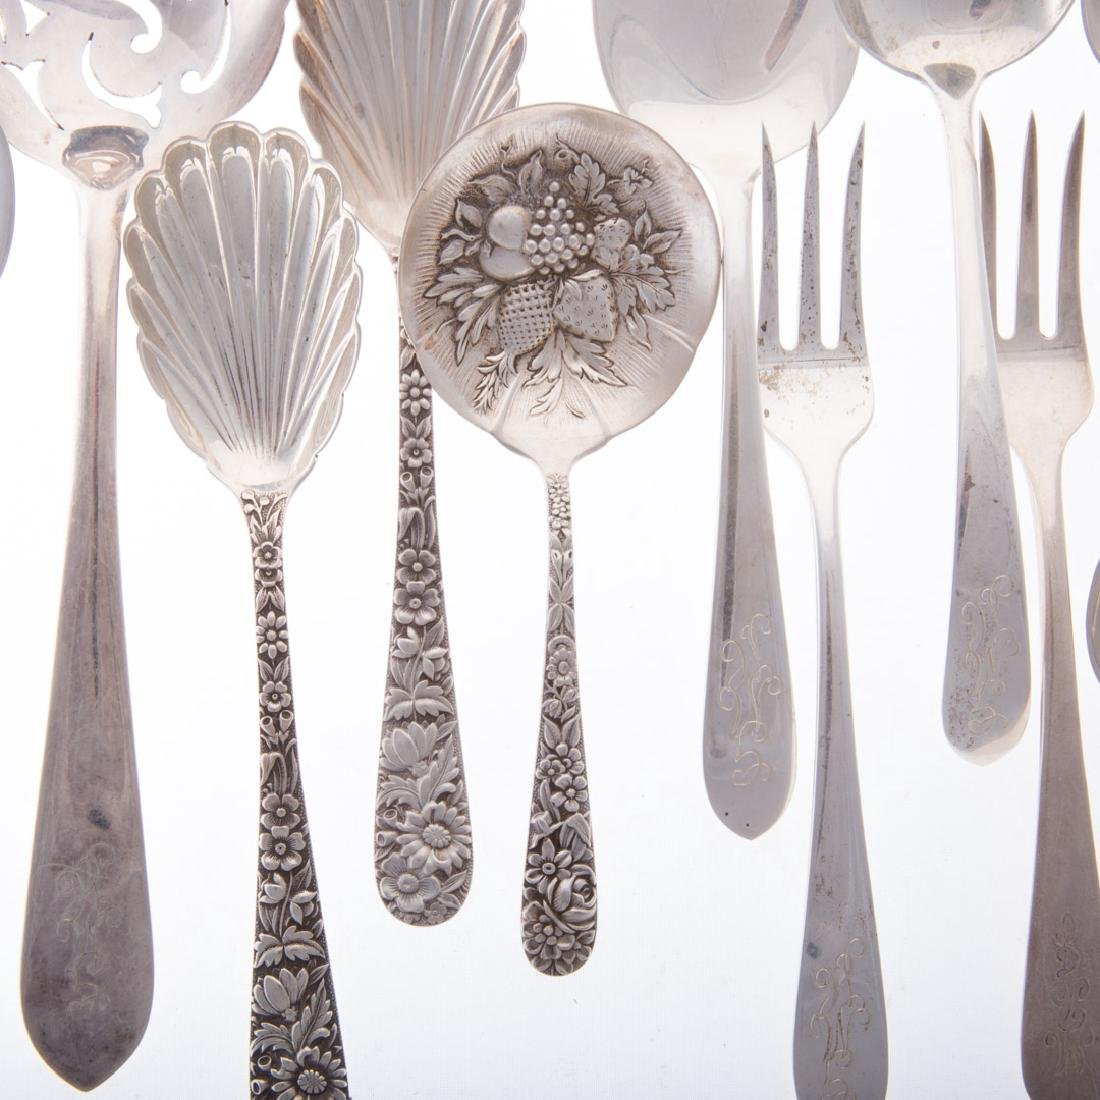 Collection of Kirk sterling silver flatware - 2